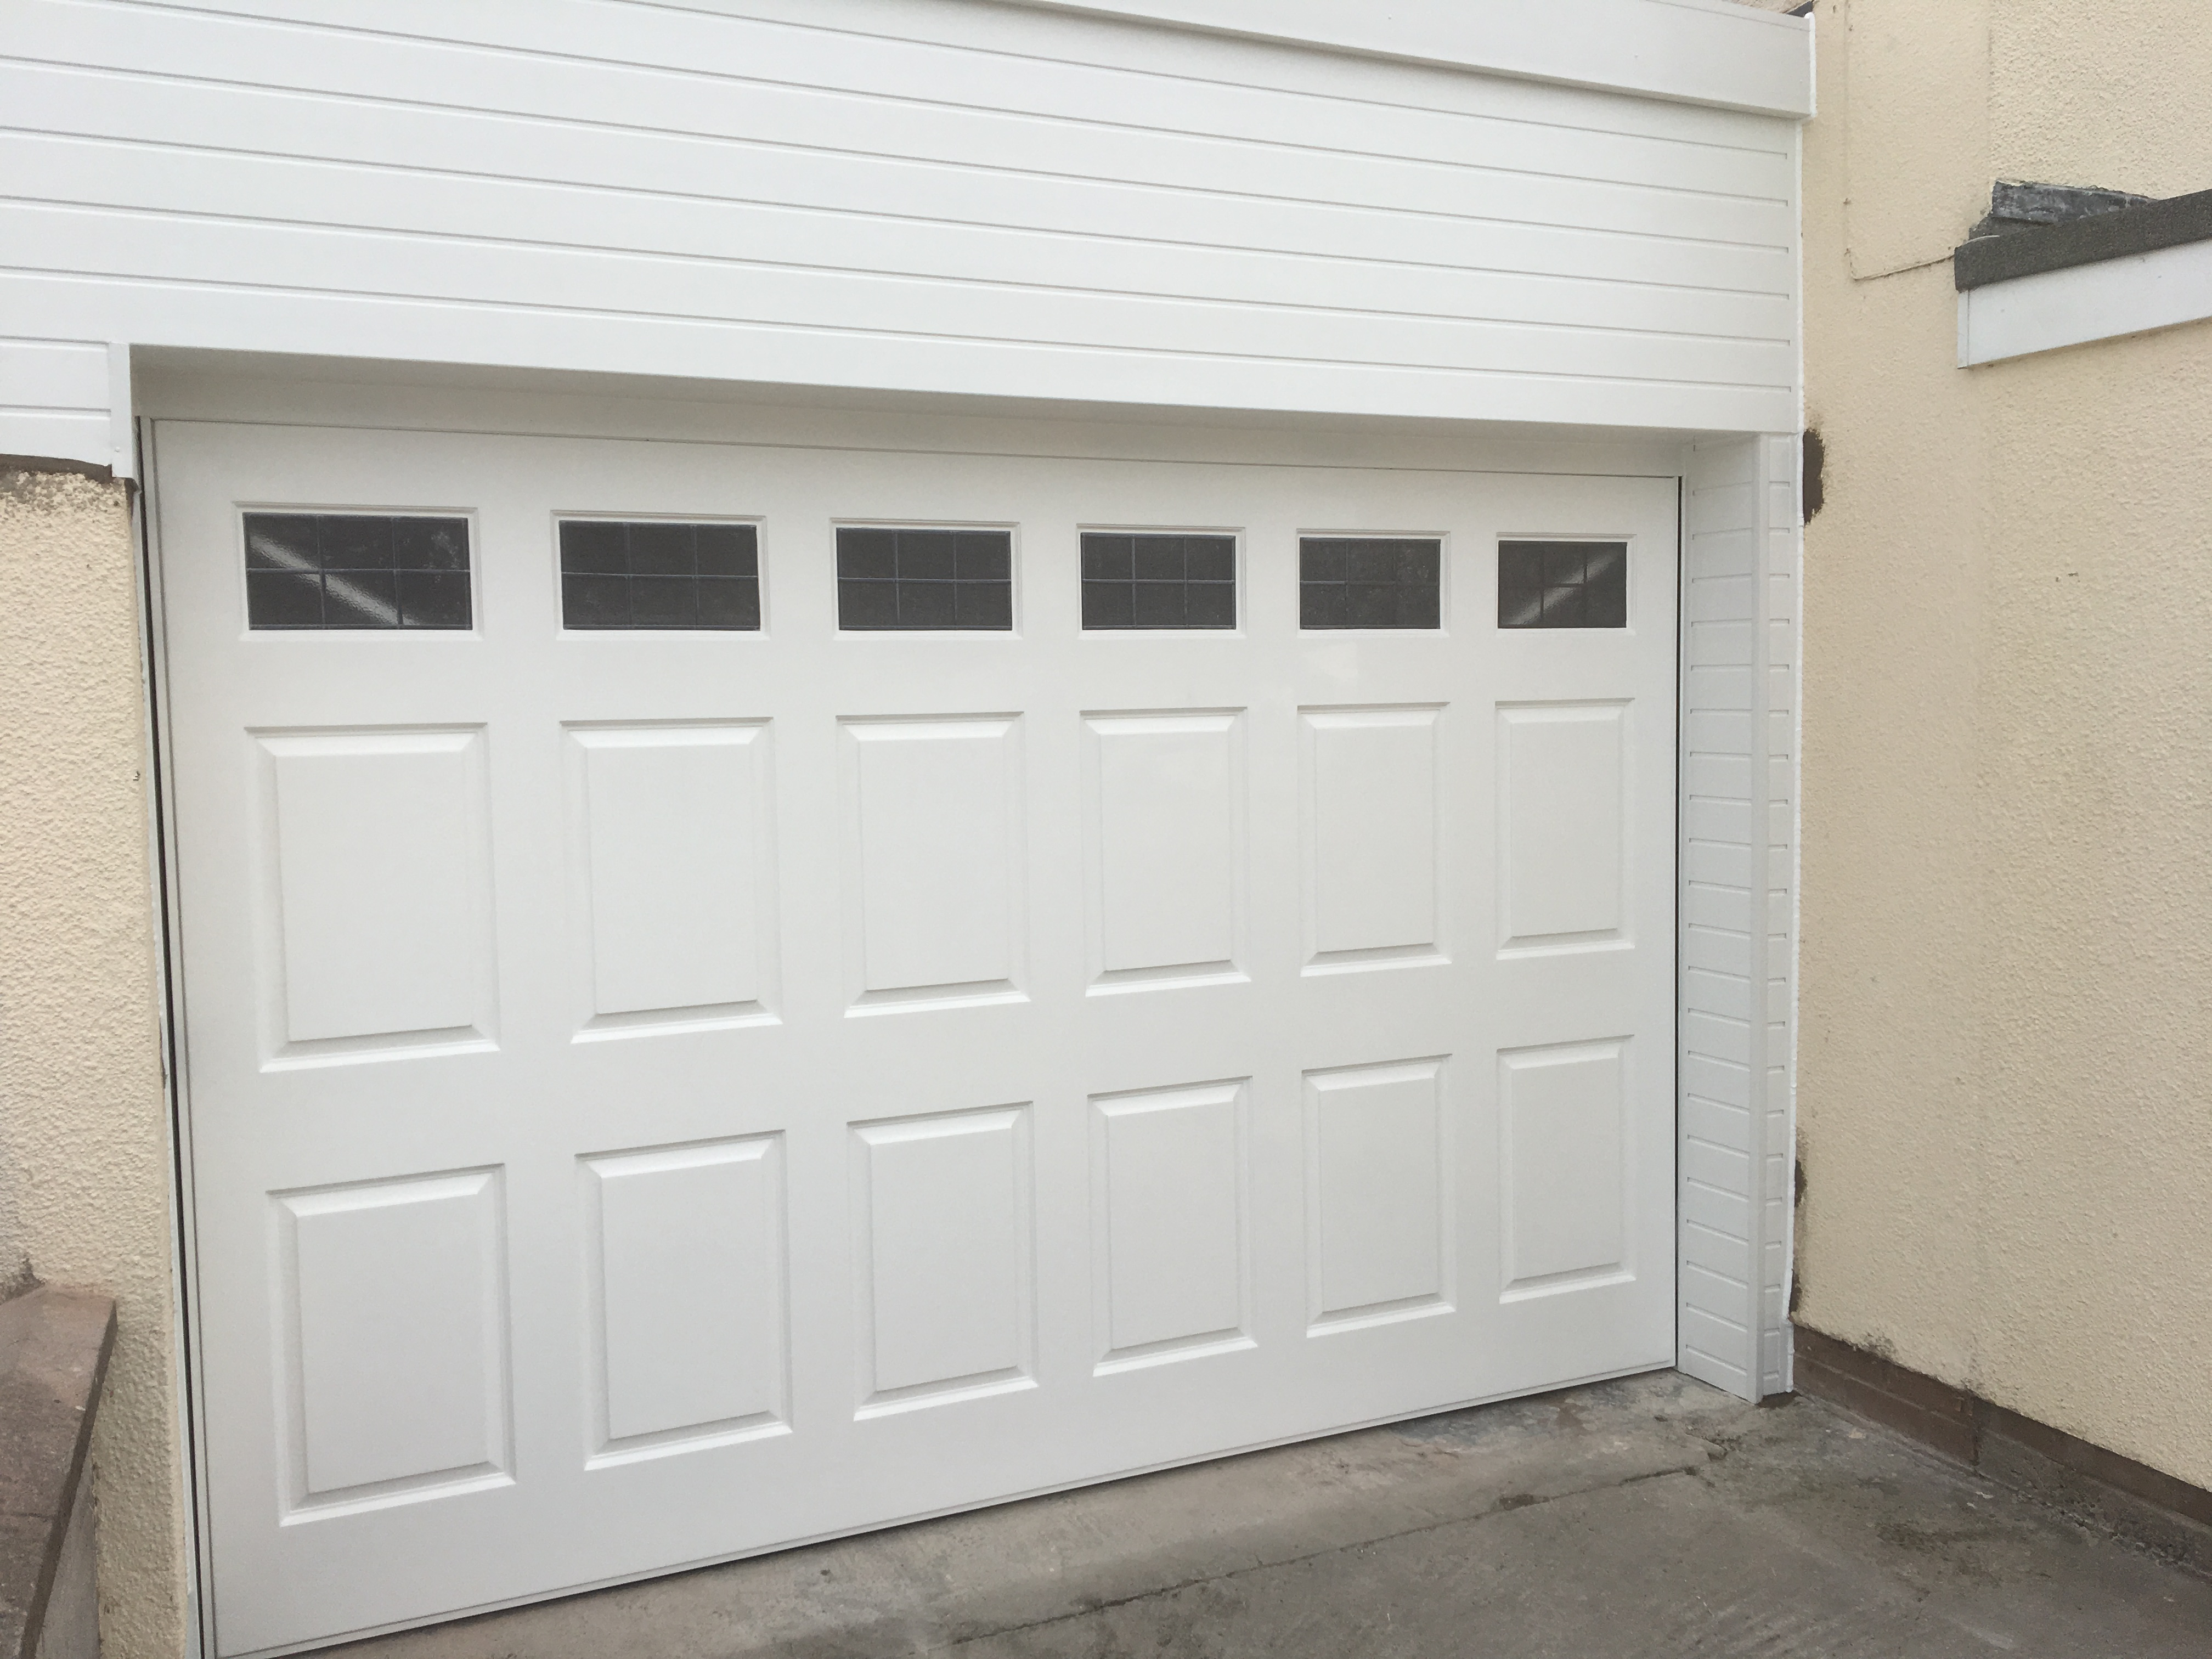 full for seal day garage doors company mart barrett floor same mr repair opener humble houston of size remote overhead door neighborhood uneven